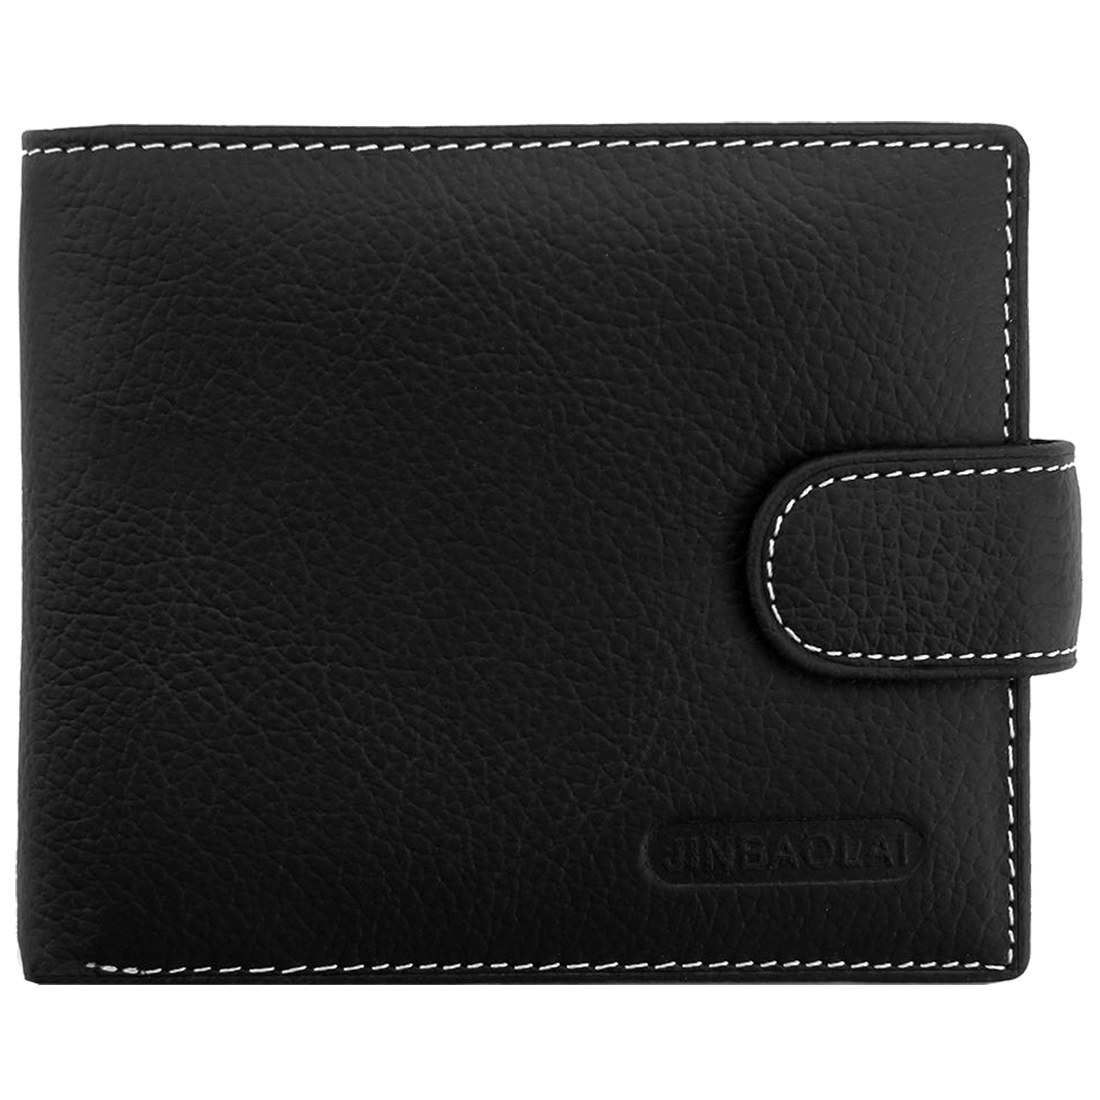 TEXU Men wallets leather wallet hasp design men wallets with coin pocket purse 2016 new gift card holder for men new fashion men wallets famous brand leather wallet hasp design wallets with coin pocket purse card holder for men carteira